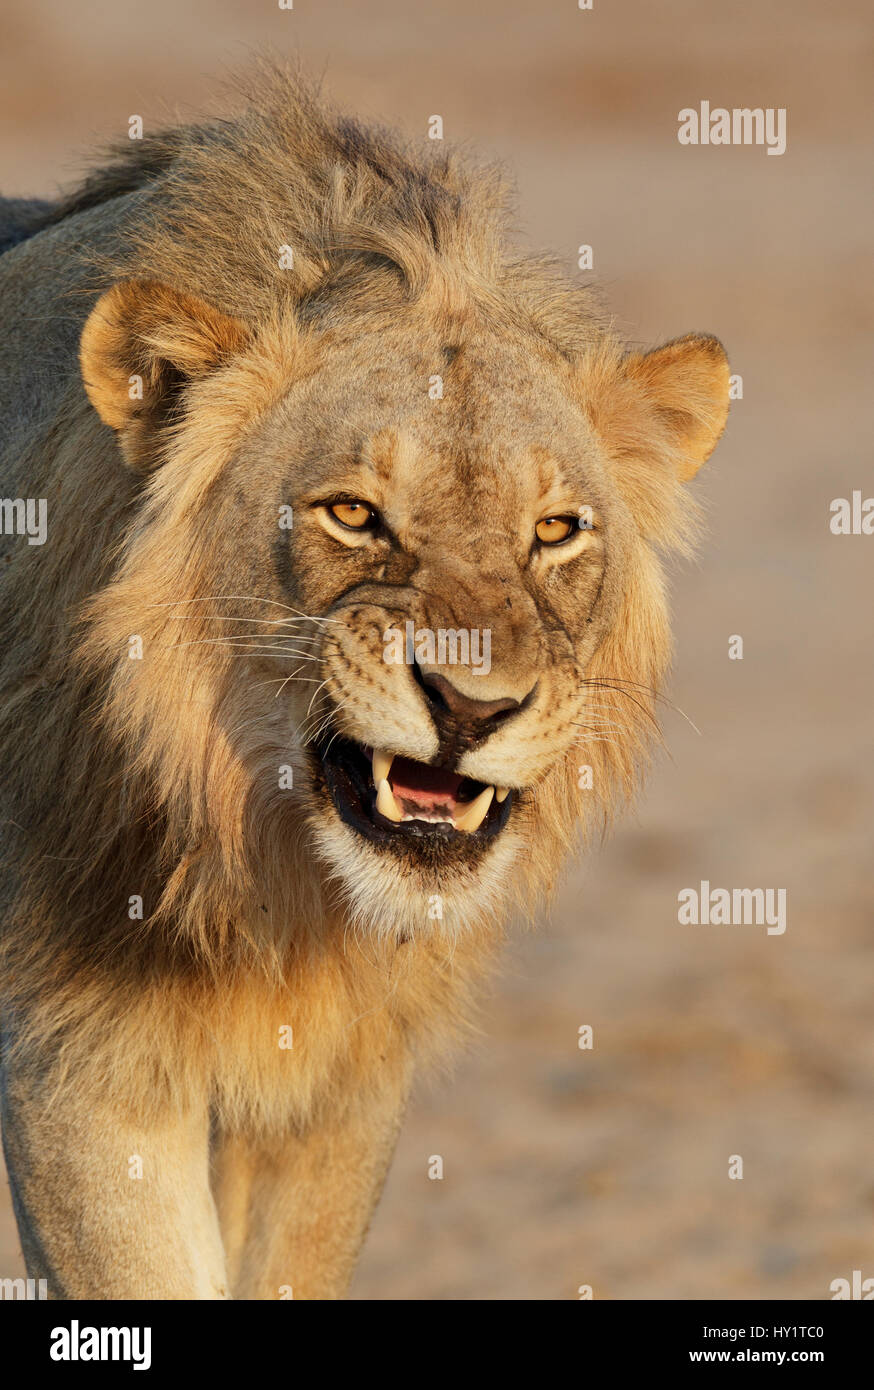 African lion (Panthera leo) young male snarling, Etosha National Park, Namibia. October. - Stock Image